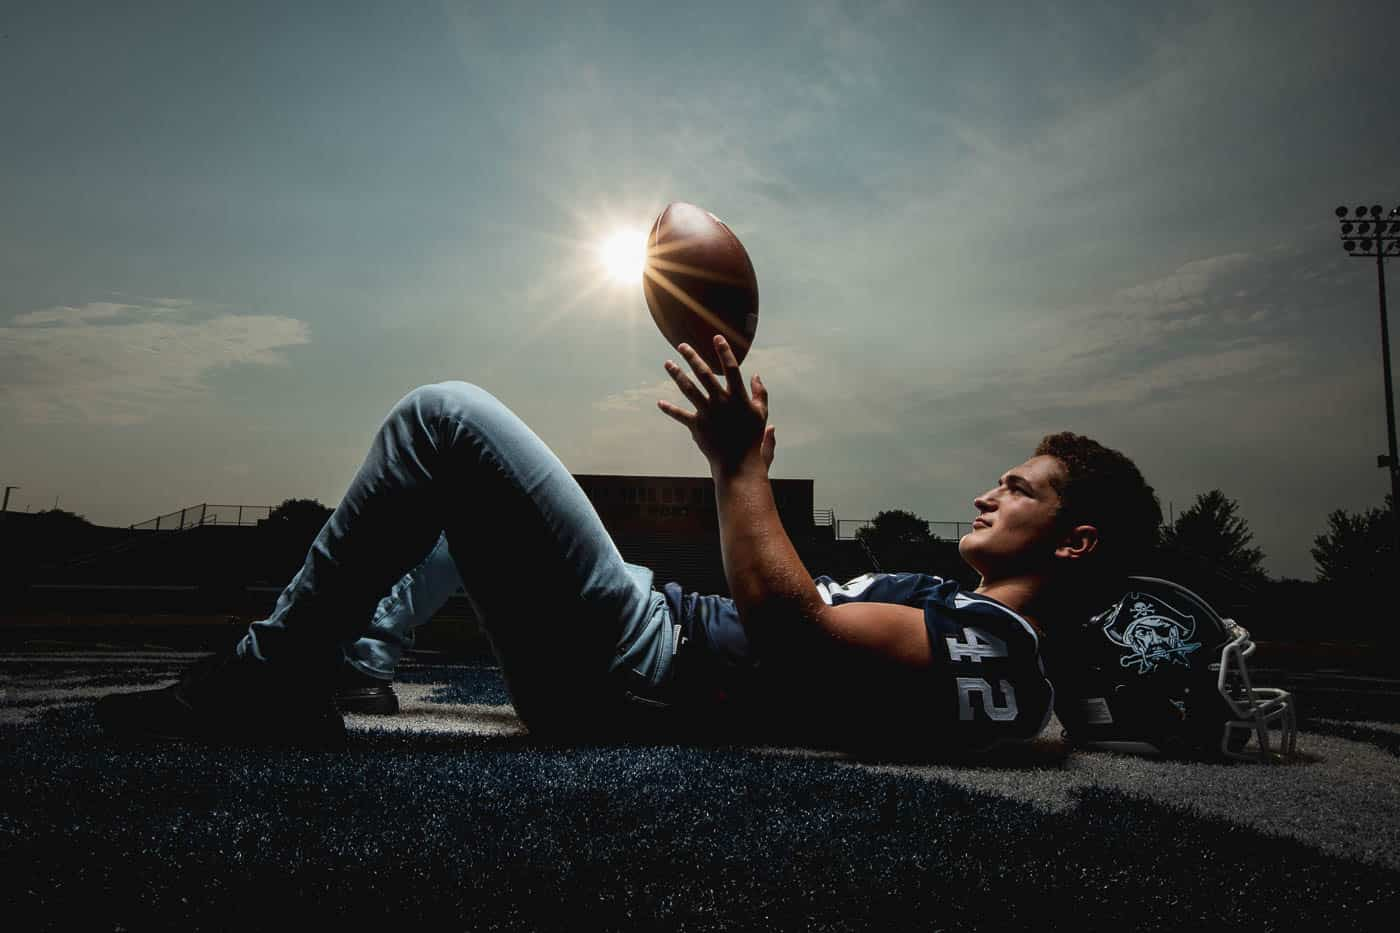 Football Senior Pictures. Lying on school field for pictures